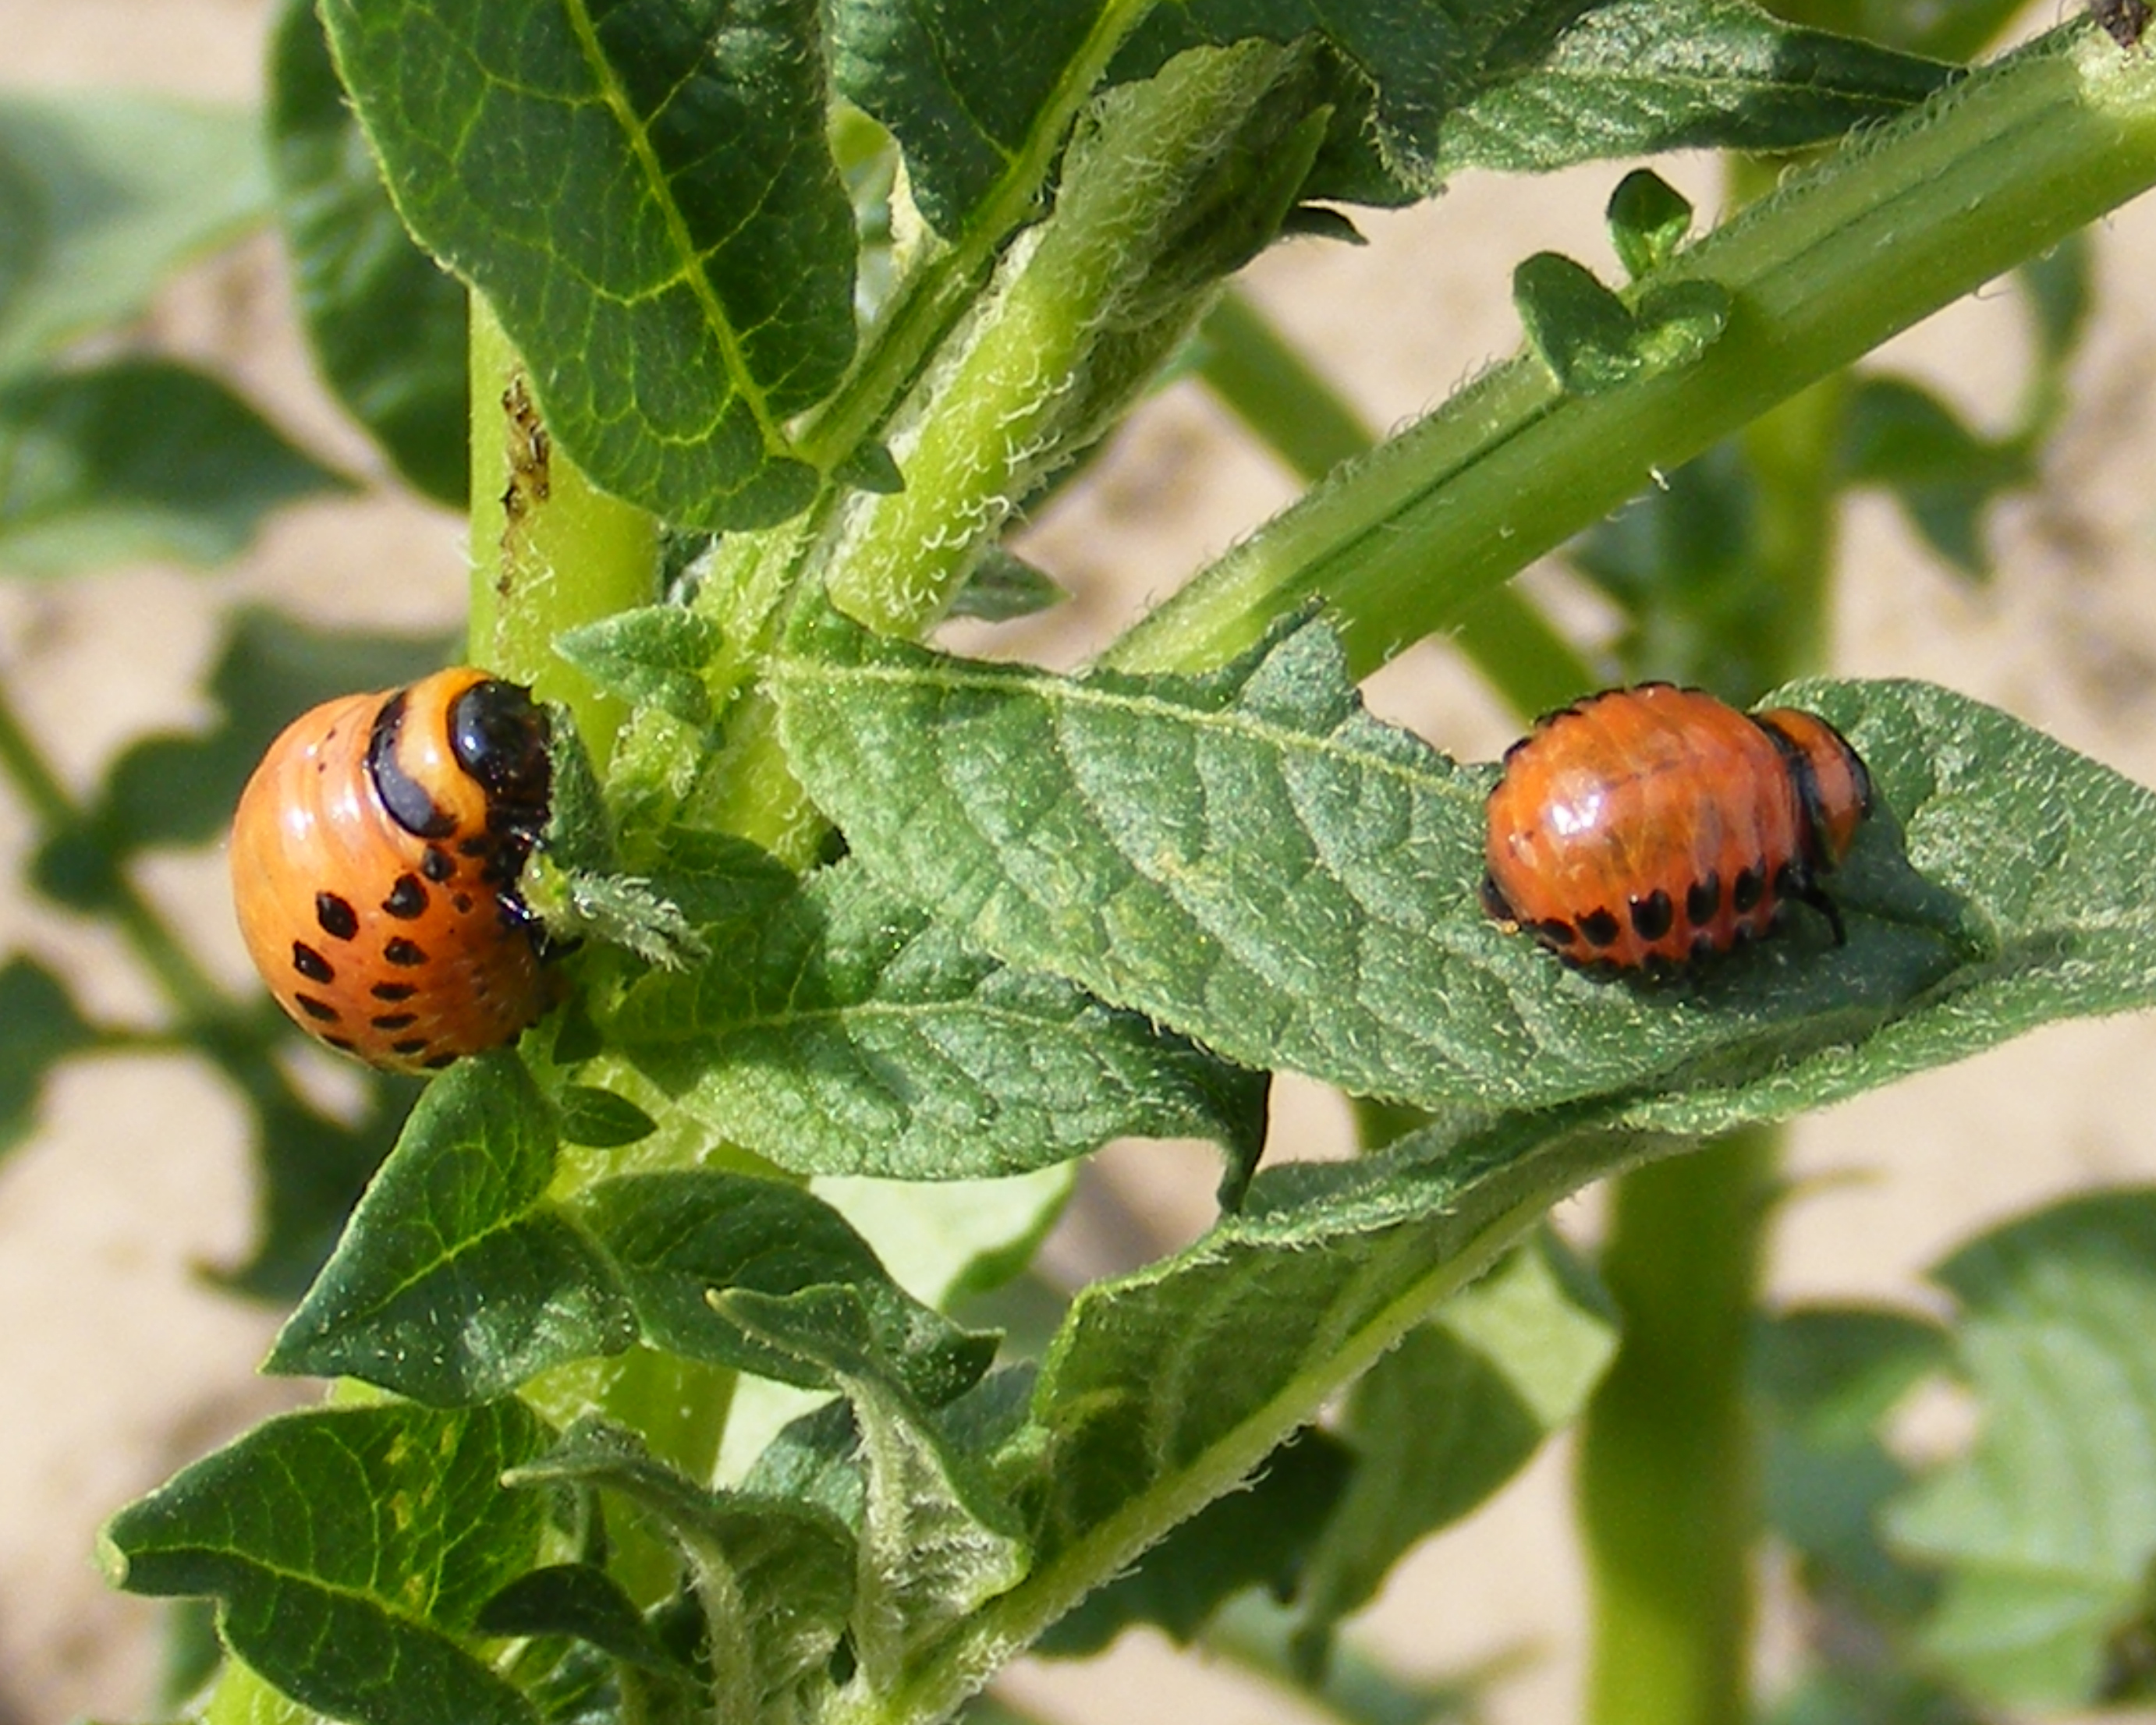 Plant Insect Interaction Colorado Potato Beetle Larvae Feeding On Potatoes The Life Of Your Time